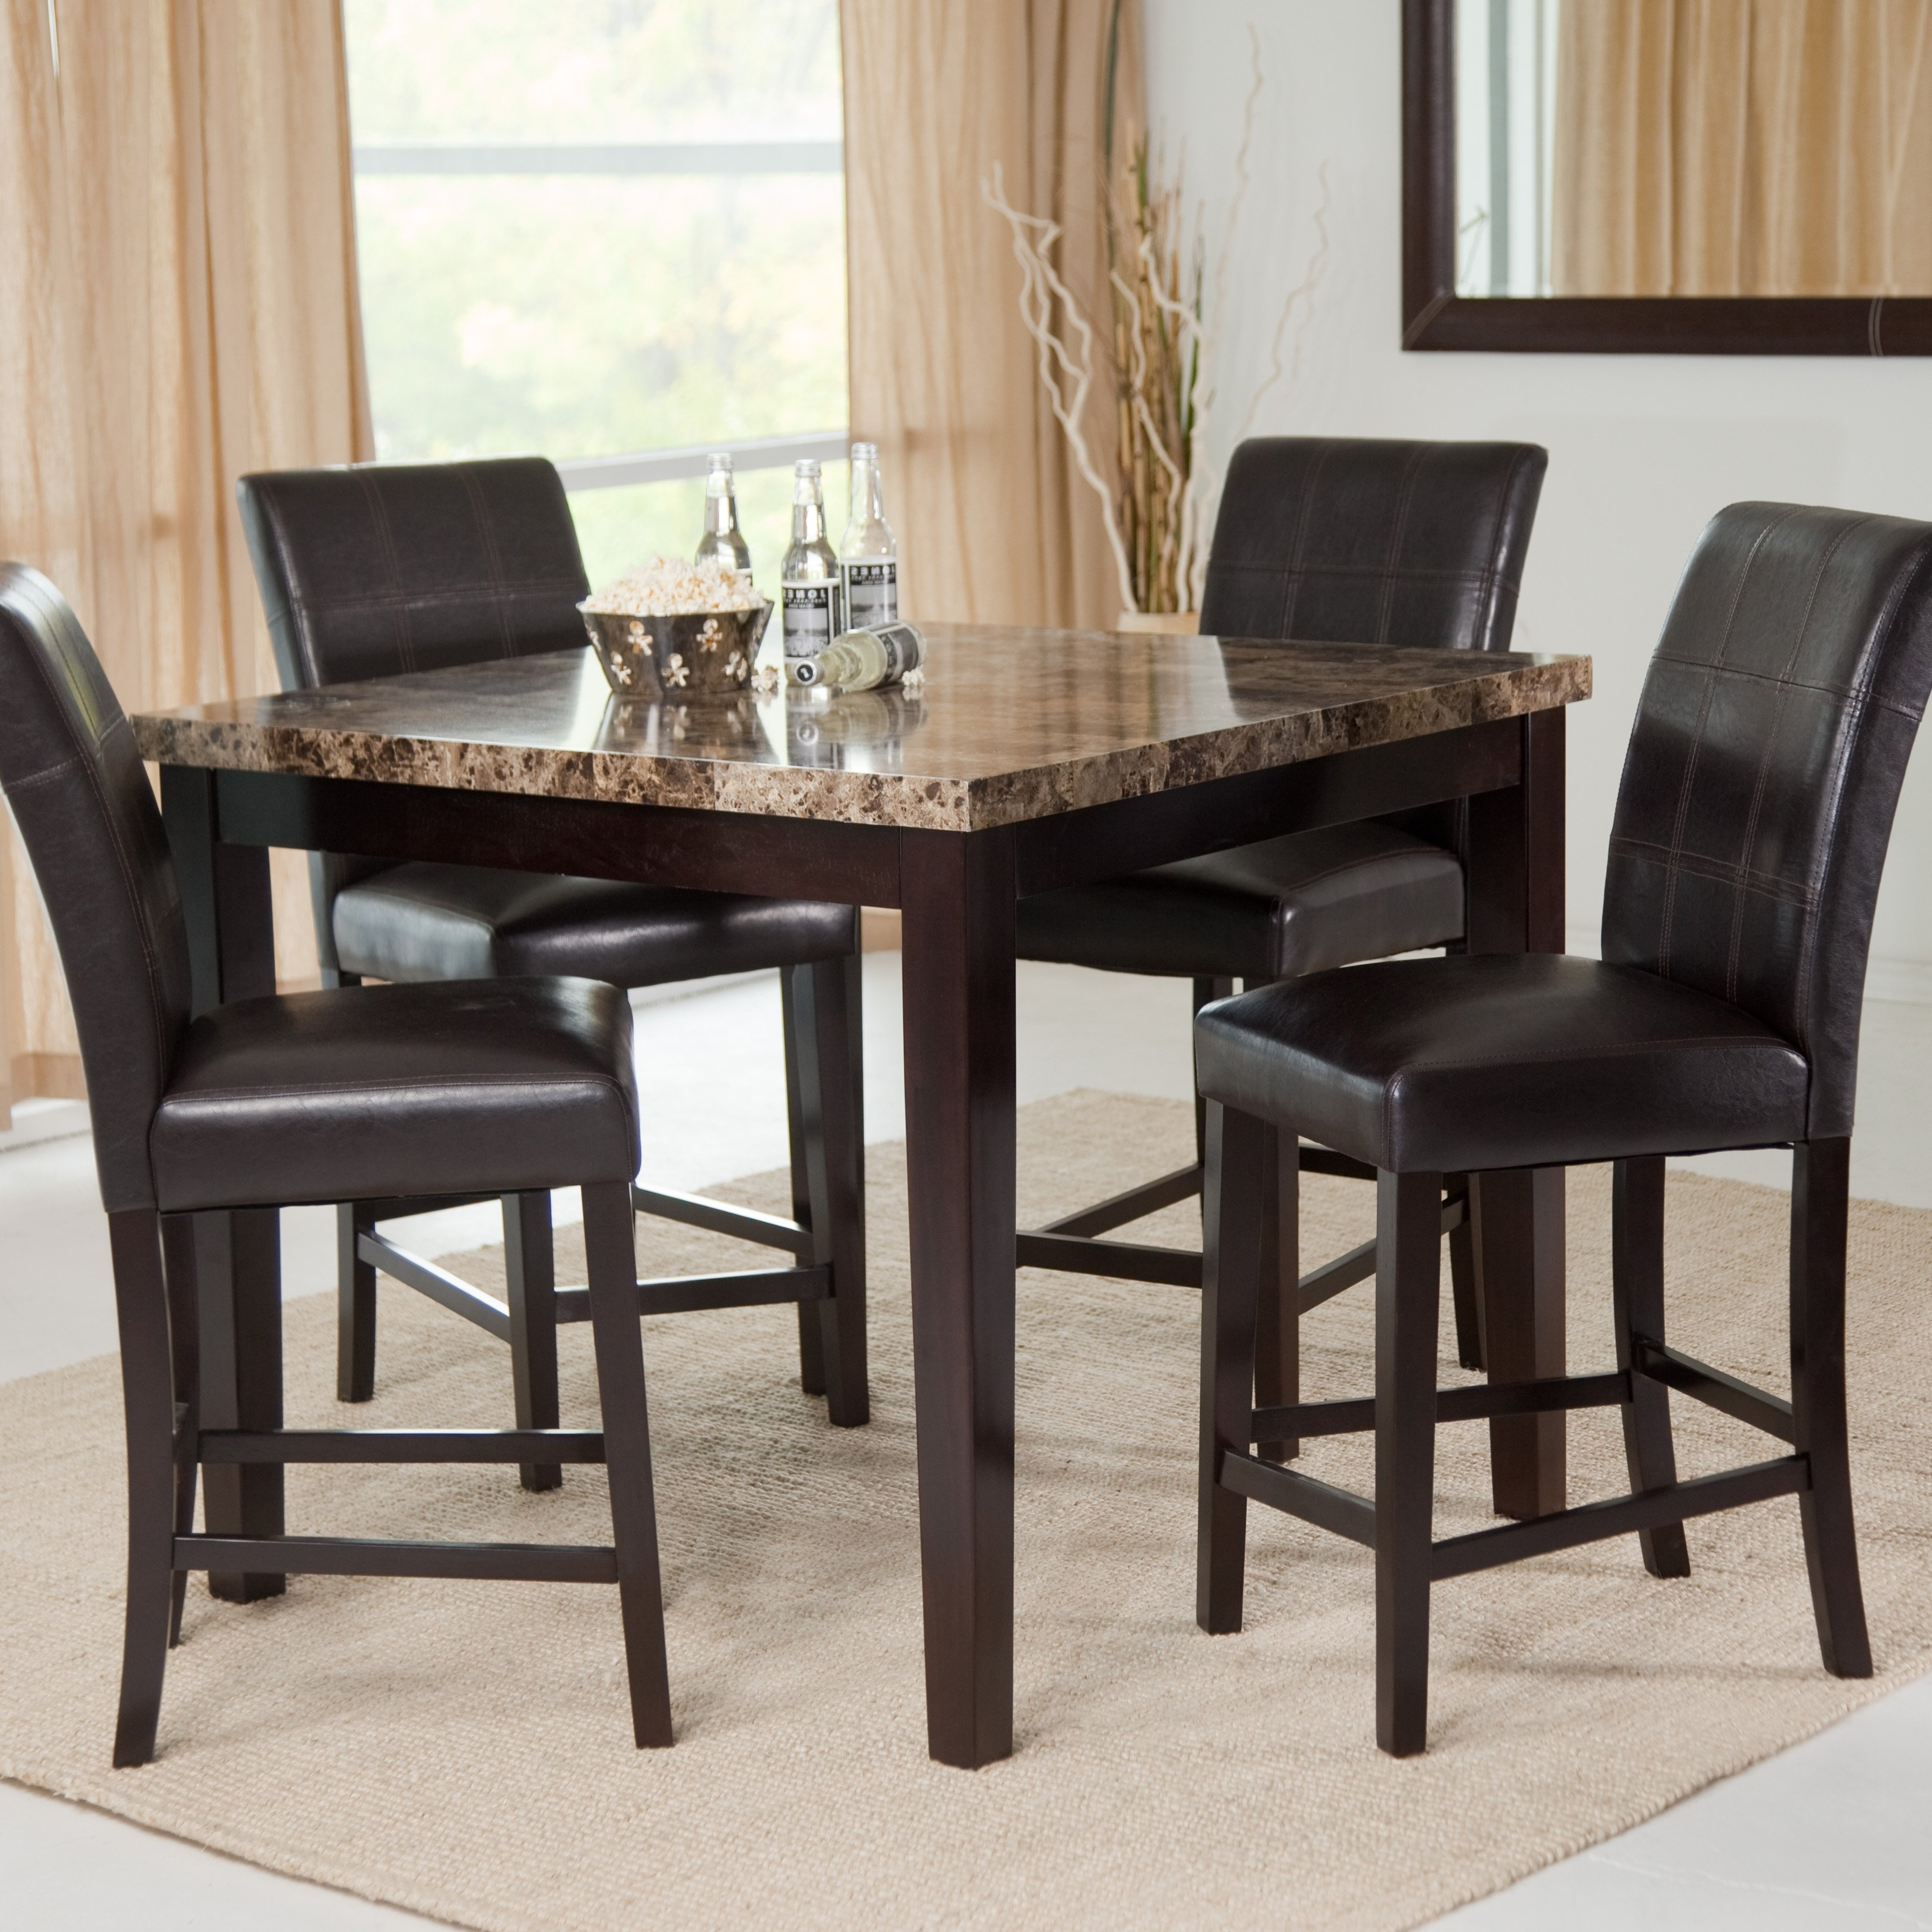 Hayneedle Intended For Palazzo 3 Piece Dining Table Sets (View 8 of 25)